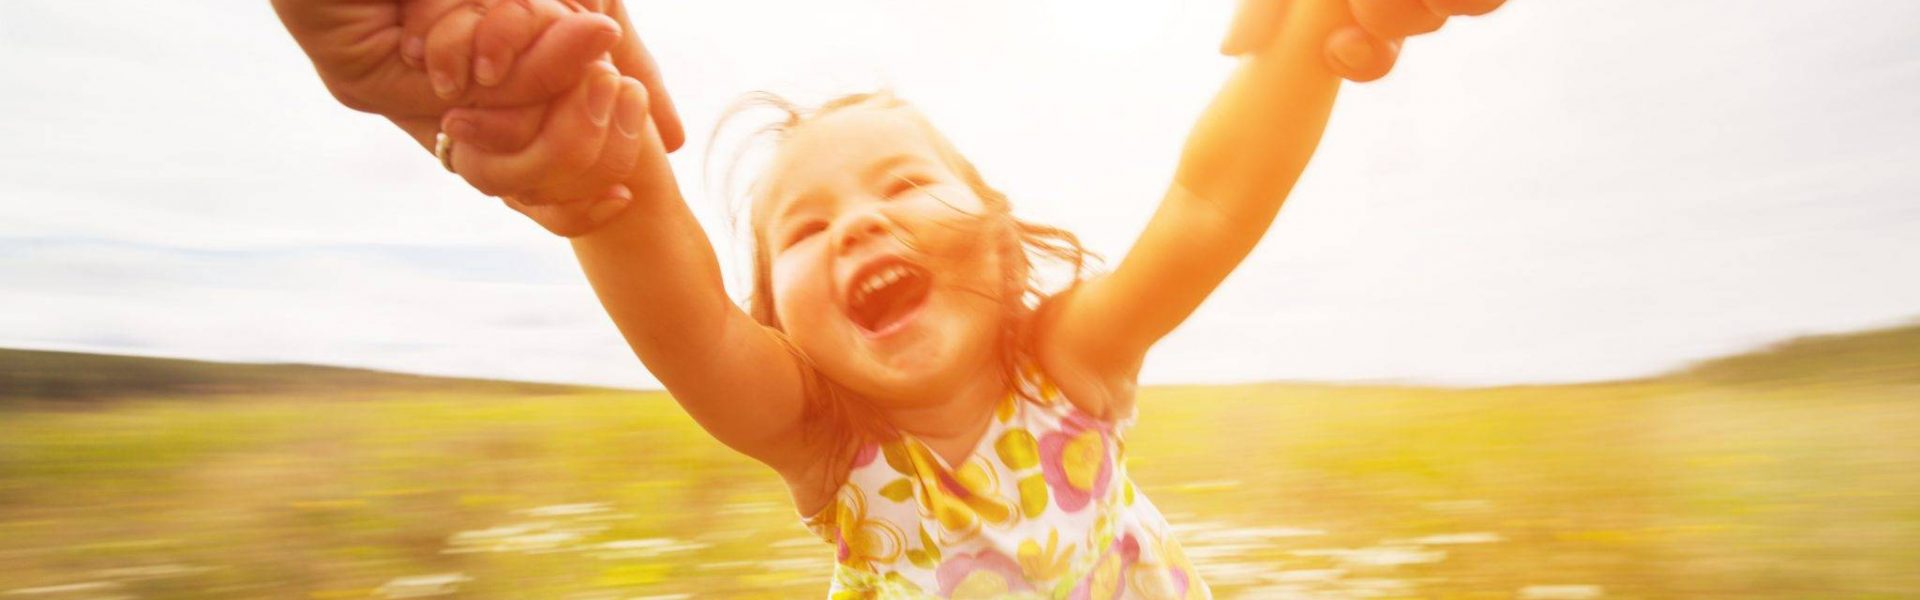 playing-child-is-healthy-and-happy-after-osteopathy-treatment